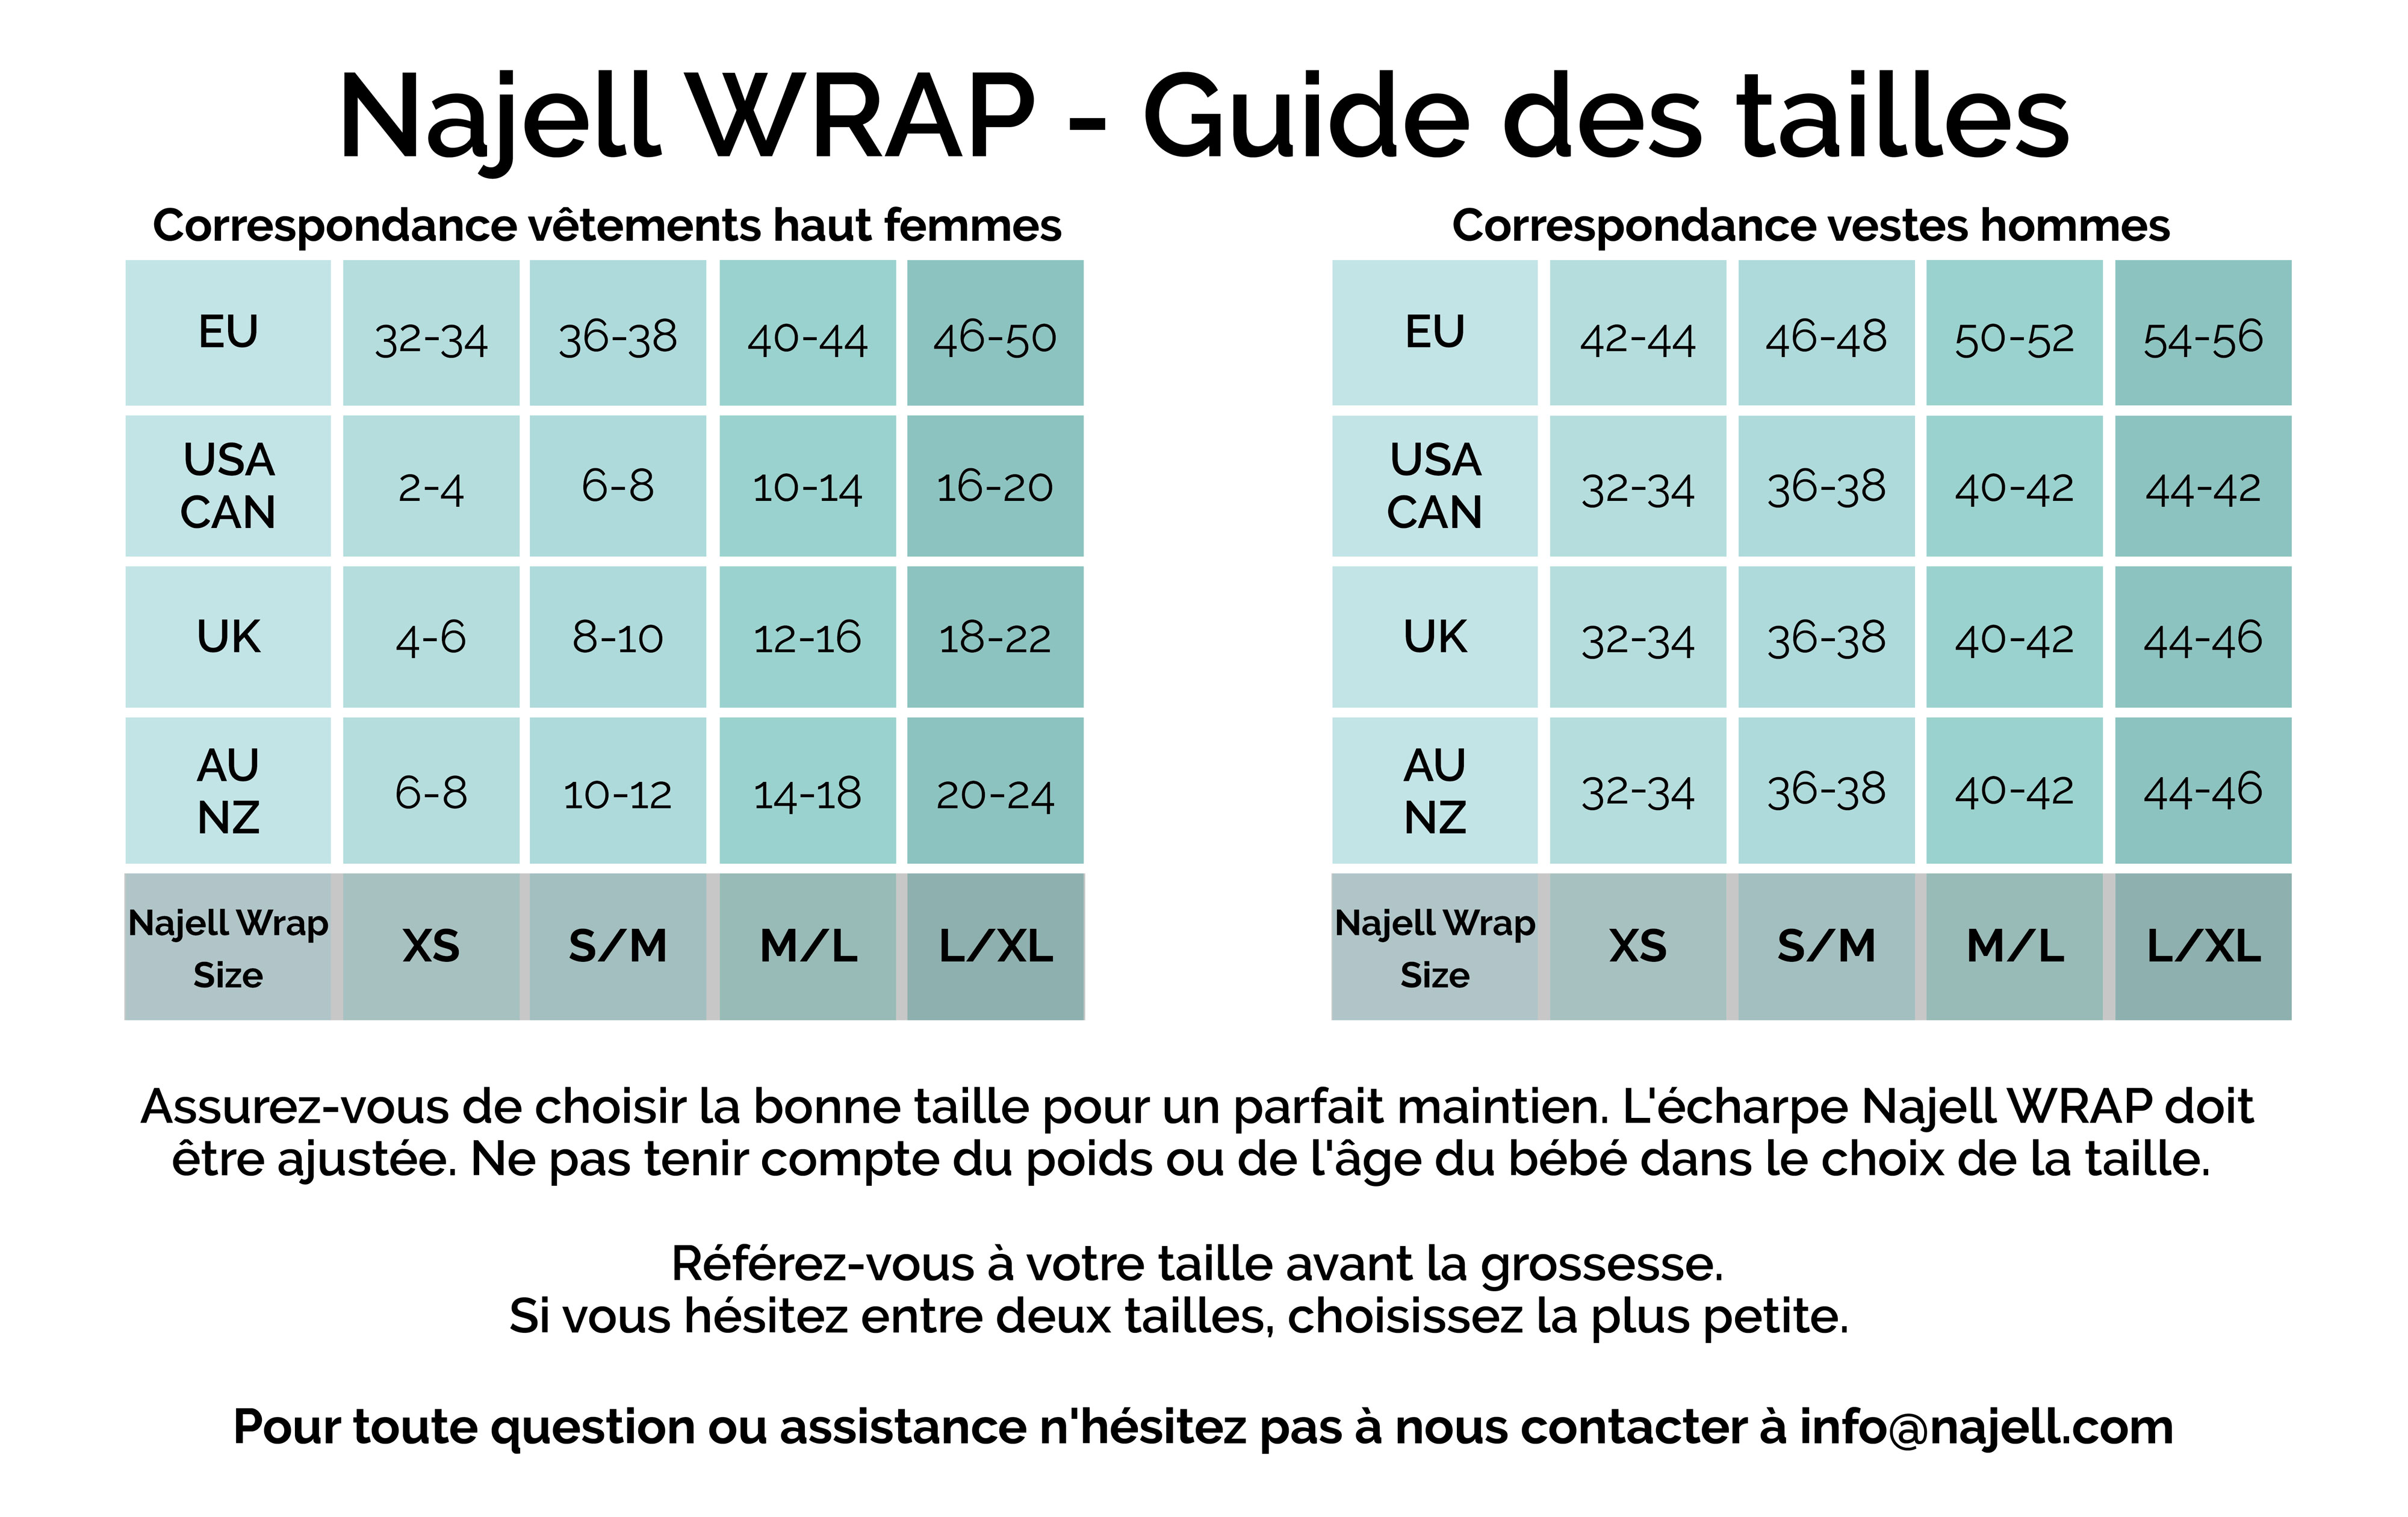 Najell WRAP guide des tailles